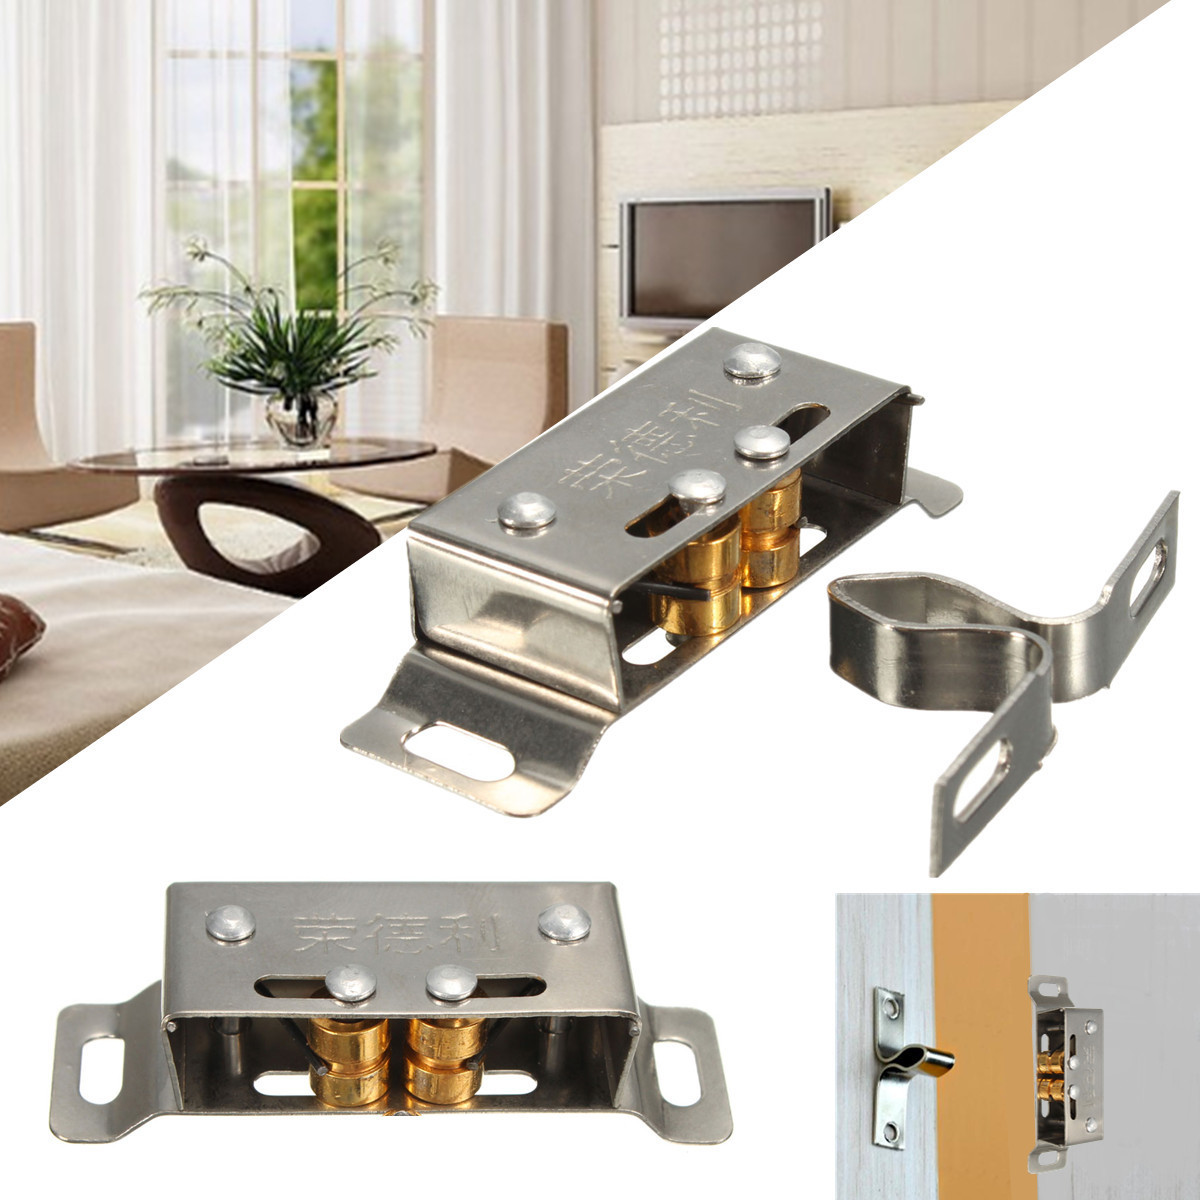 Kitchen Cabinet Latches: Stainless Steel Catch Stopper For Cupboard Cabinet Kitchen